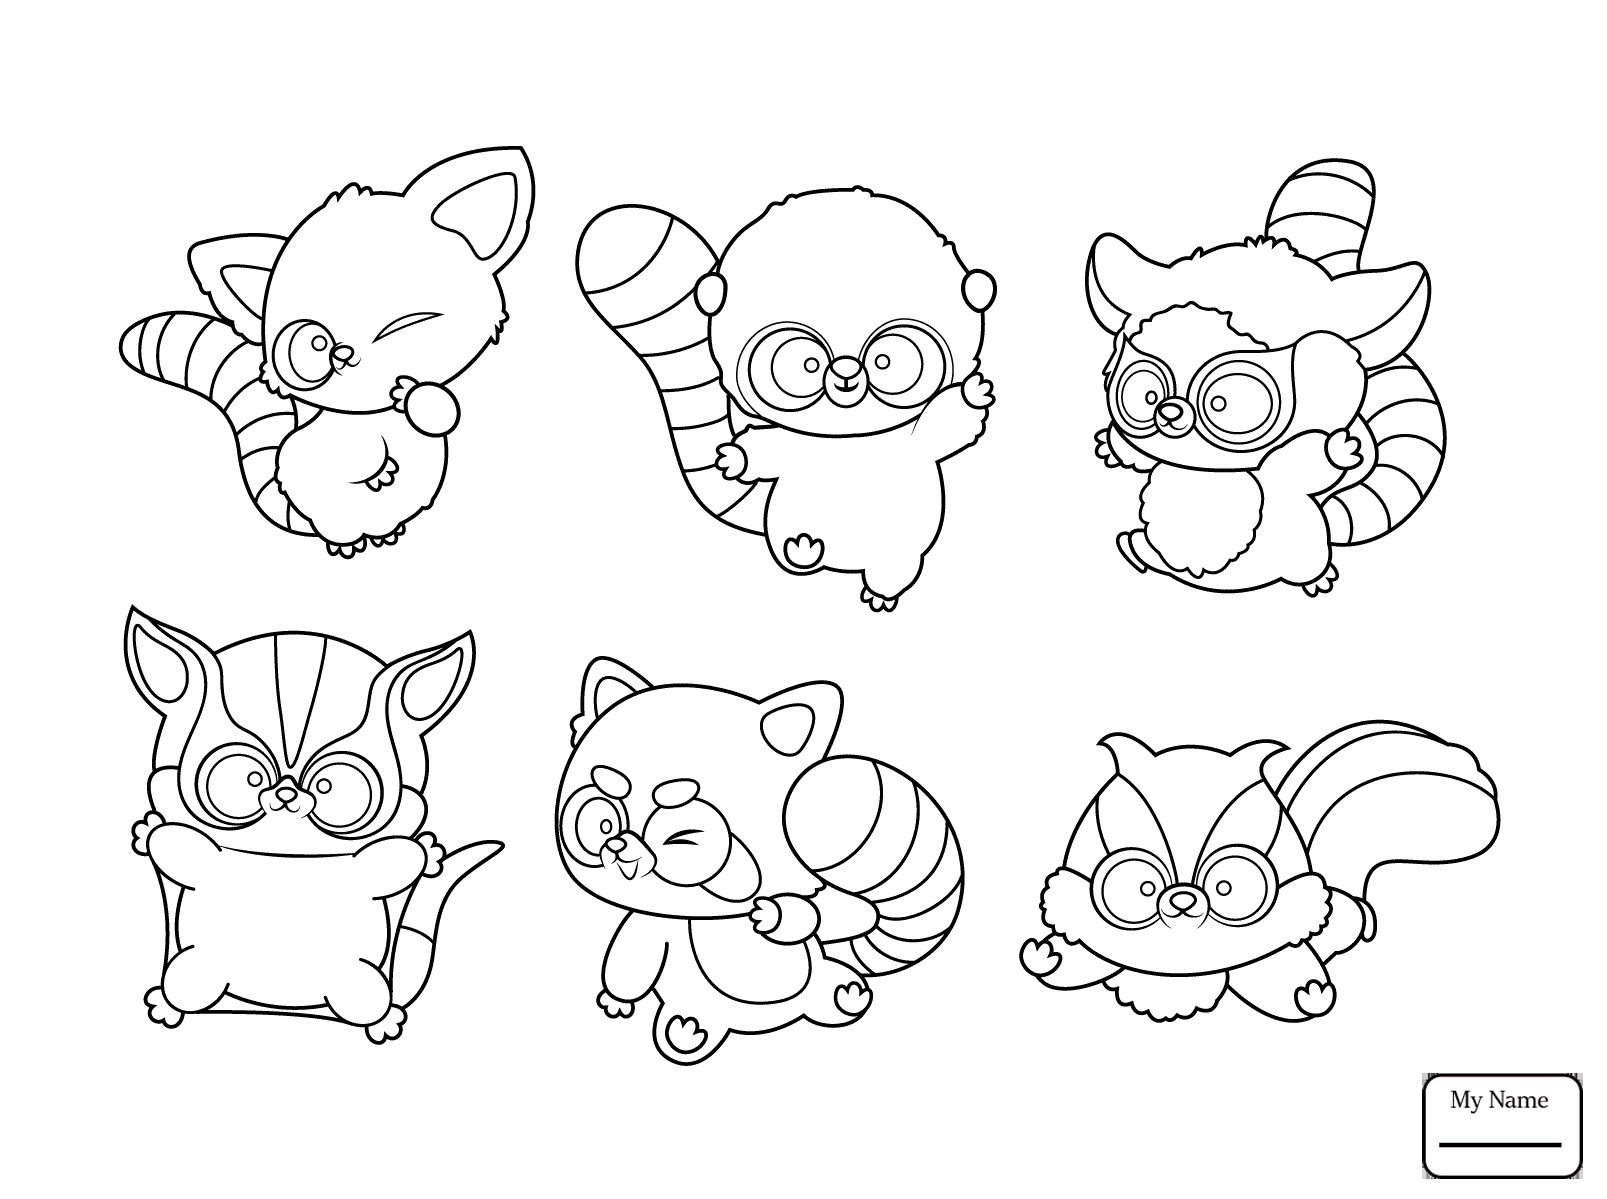 1607x1199 Furby Boom Coloring Pages For Kids Beautiful Chicka Chicka Boom